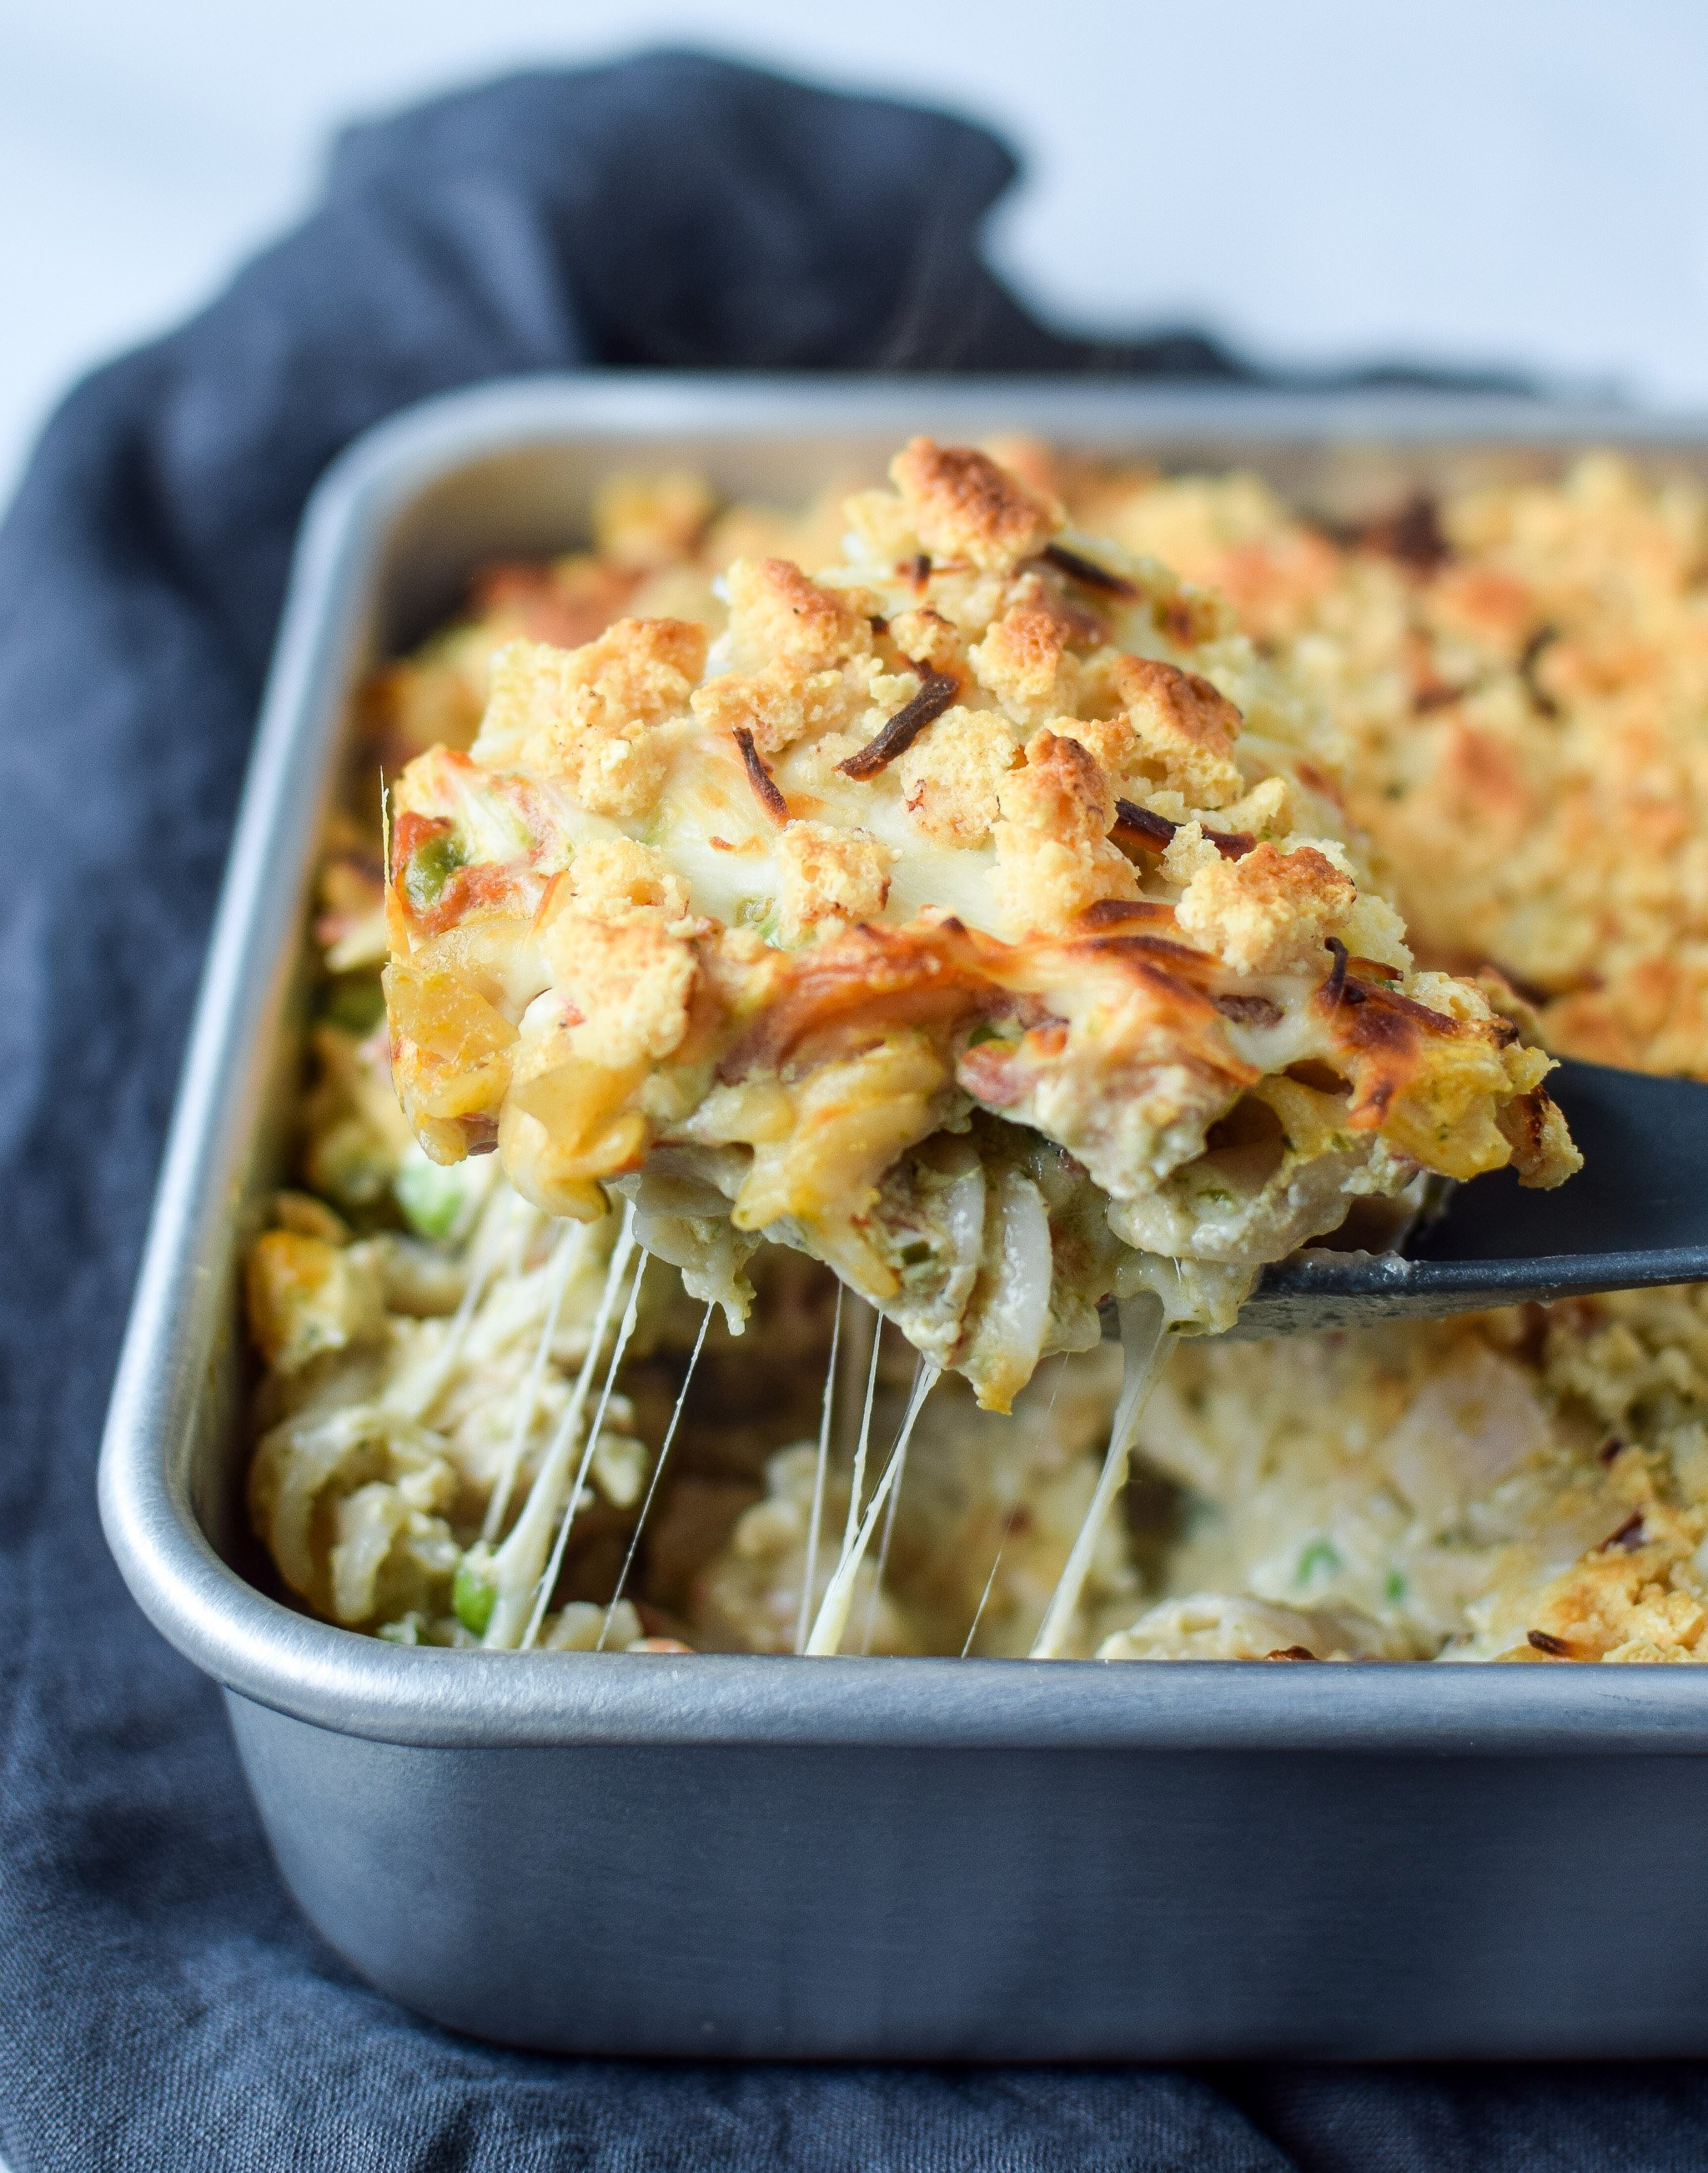 Creamy Pesto Pasta Chicken Bake with Peas - Pesto, chicken, noodles and more in this simple weeknight dinner! Perfect for leftover chicken! - ProjectMealPlan.com